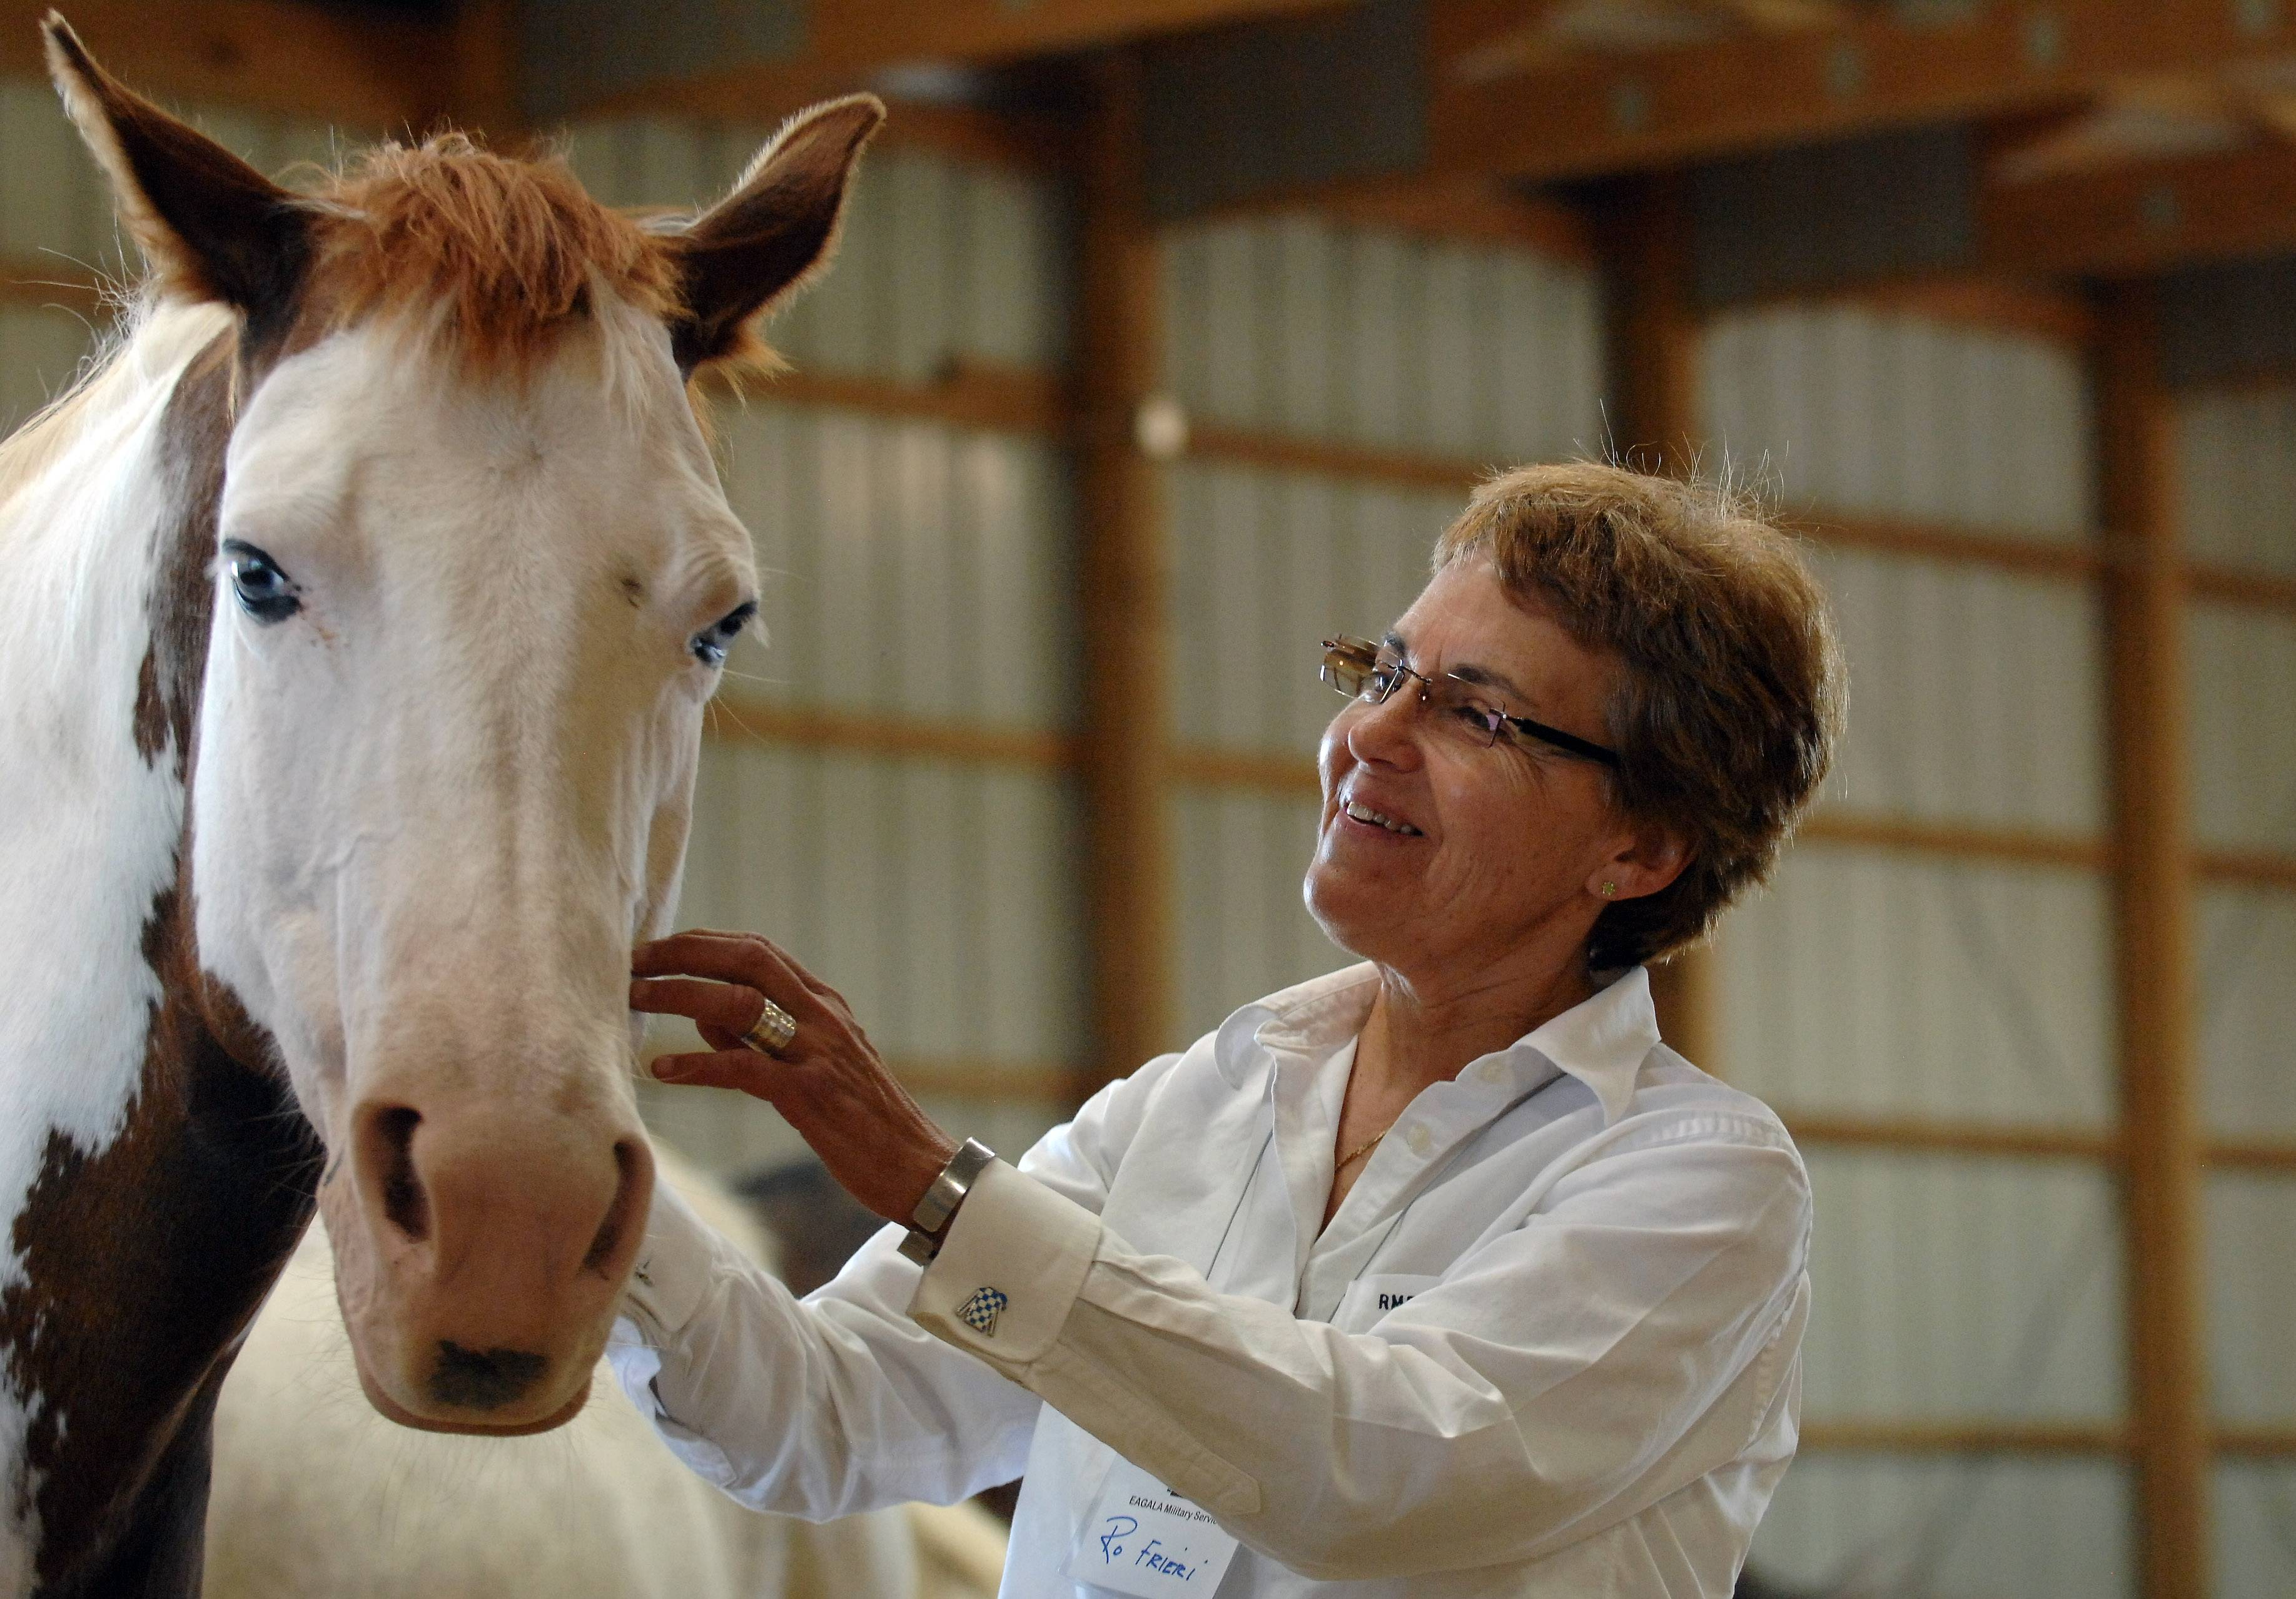 Rosanne Frieri, director of veterans services from Pittsfield, New York, gets to know one of the horses Monday at an equine-assisted therapy demonstration for veterans and military decision-makers at Reins of Change in Elgin.